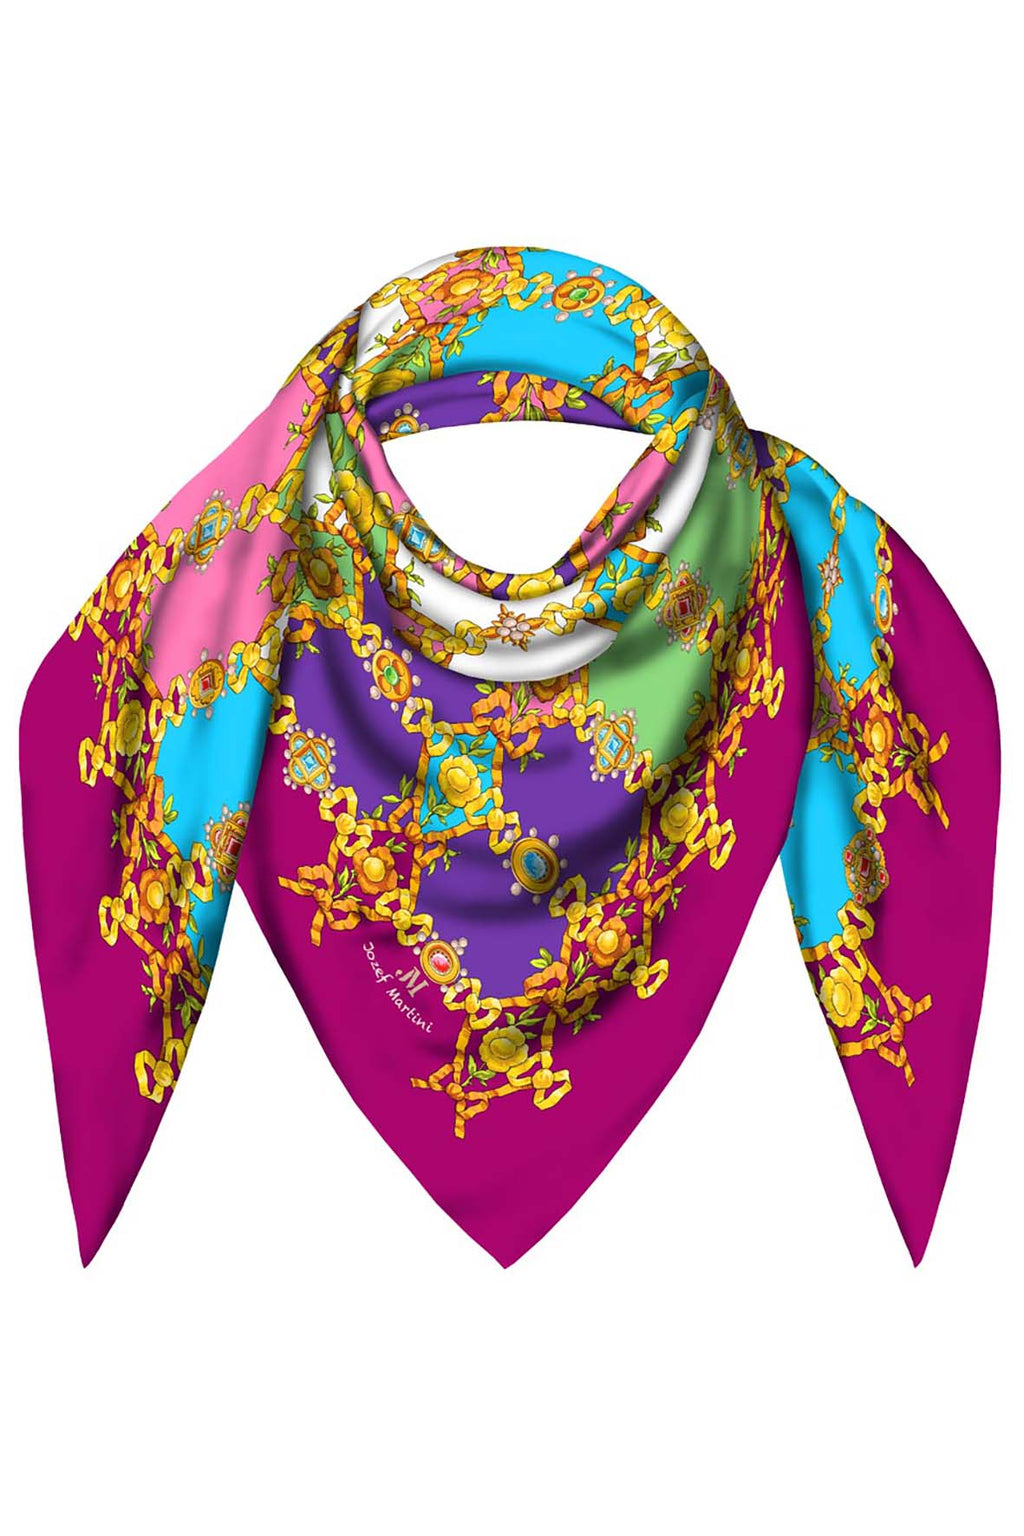 FOULARD 90 JEWELRY RIBBONS COLOURED JM PRINT SILK